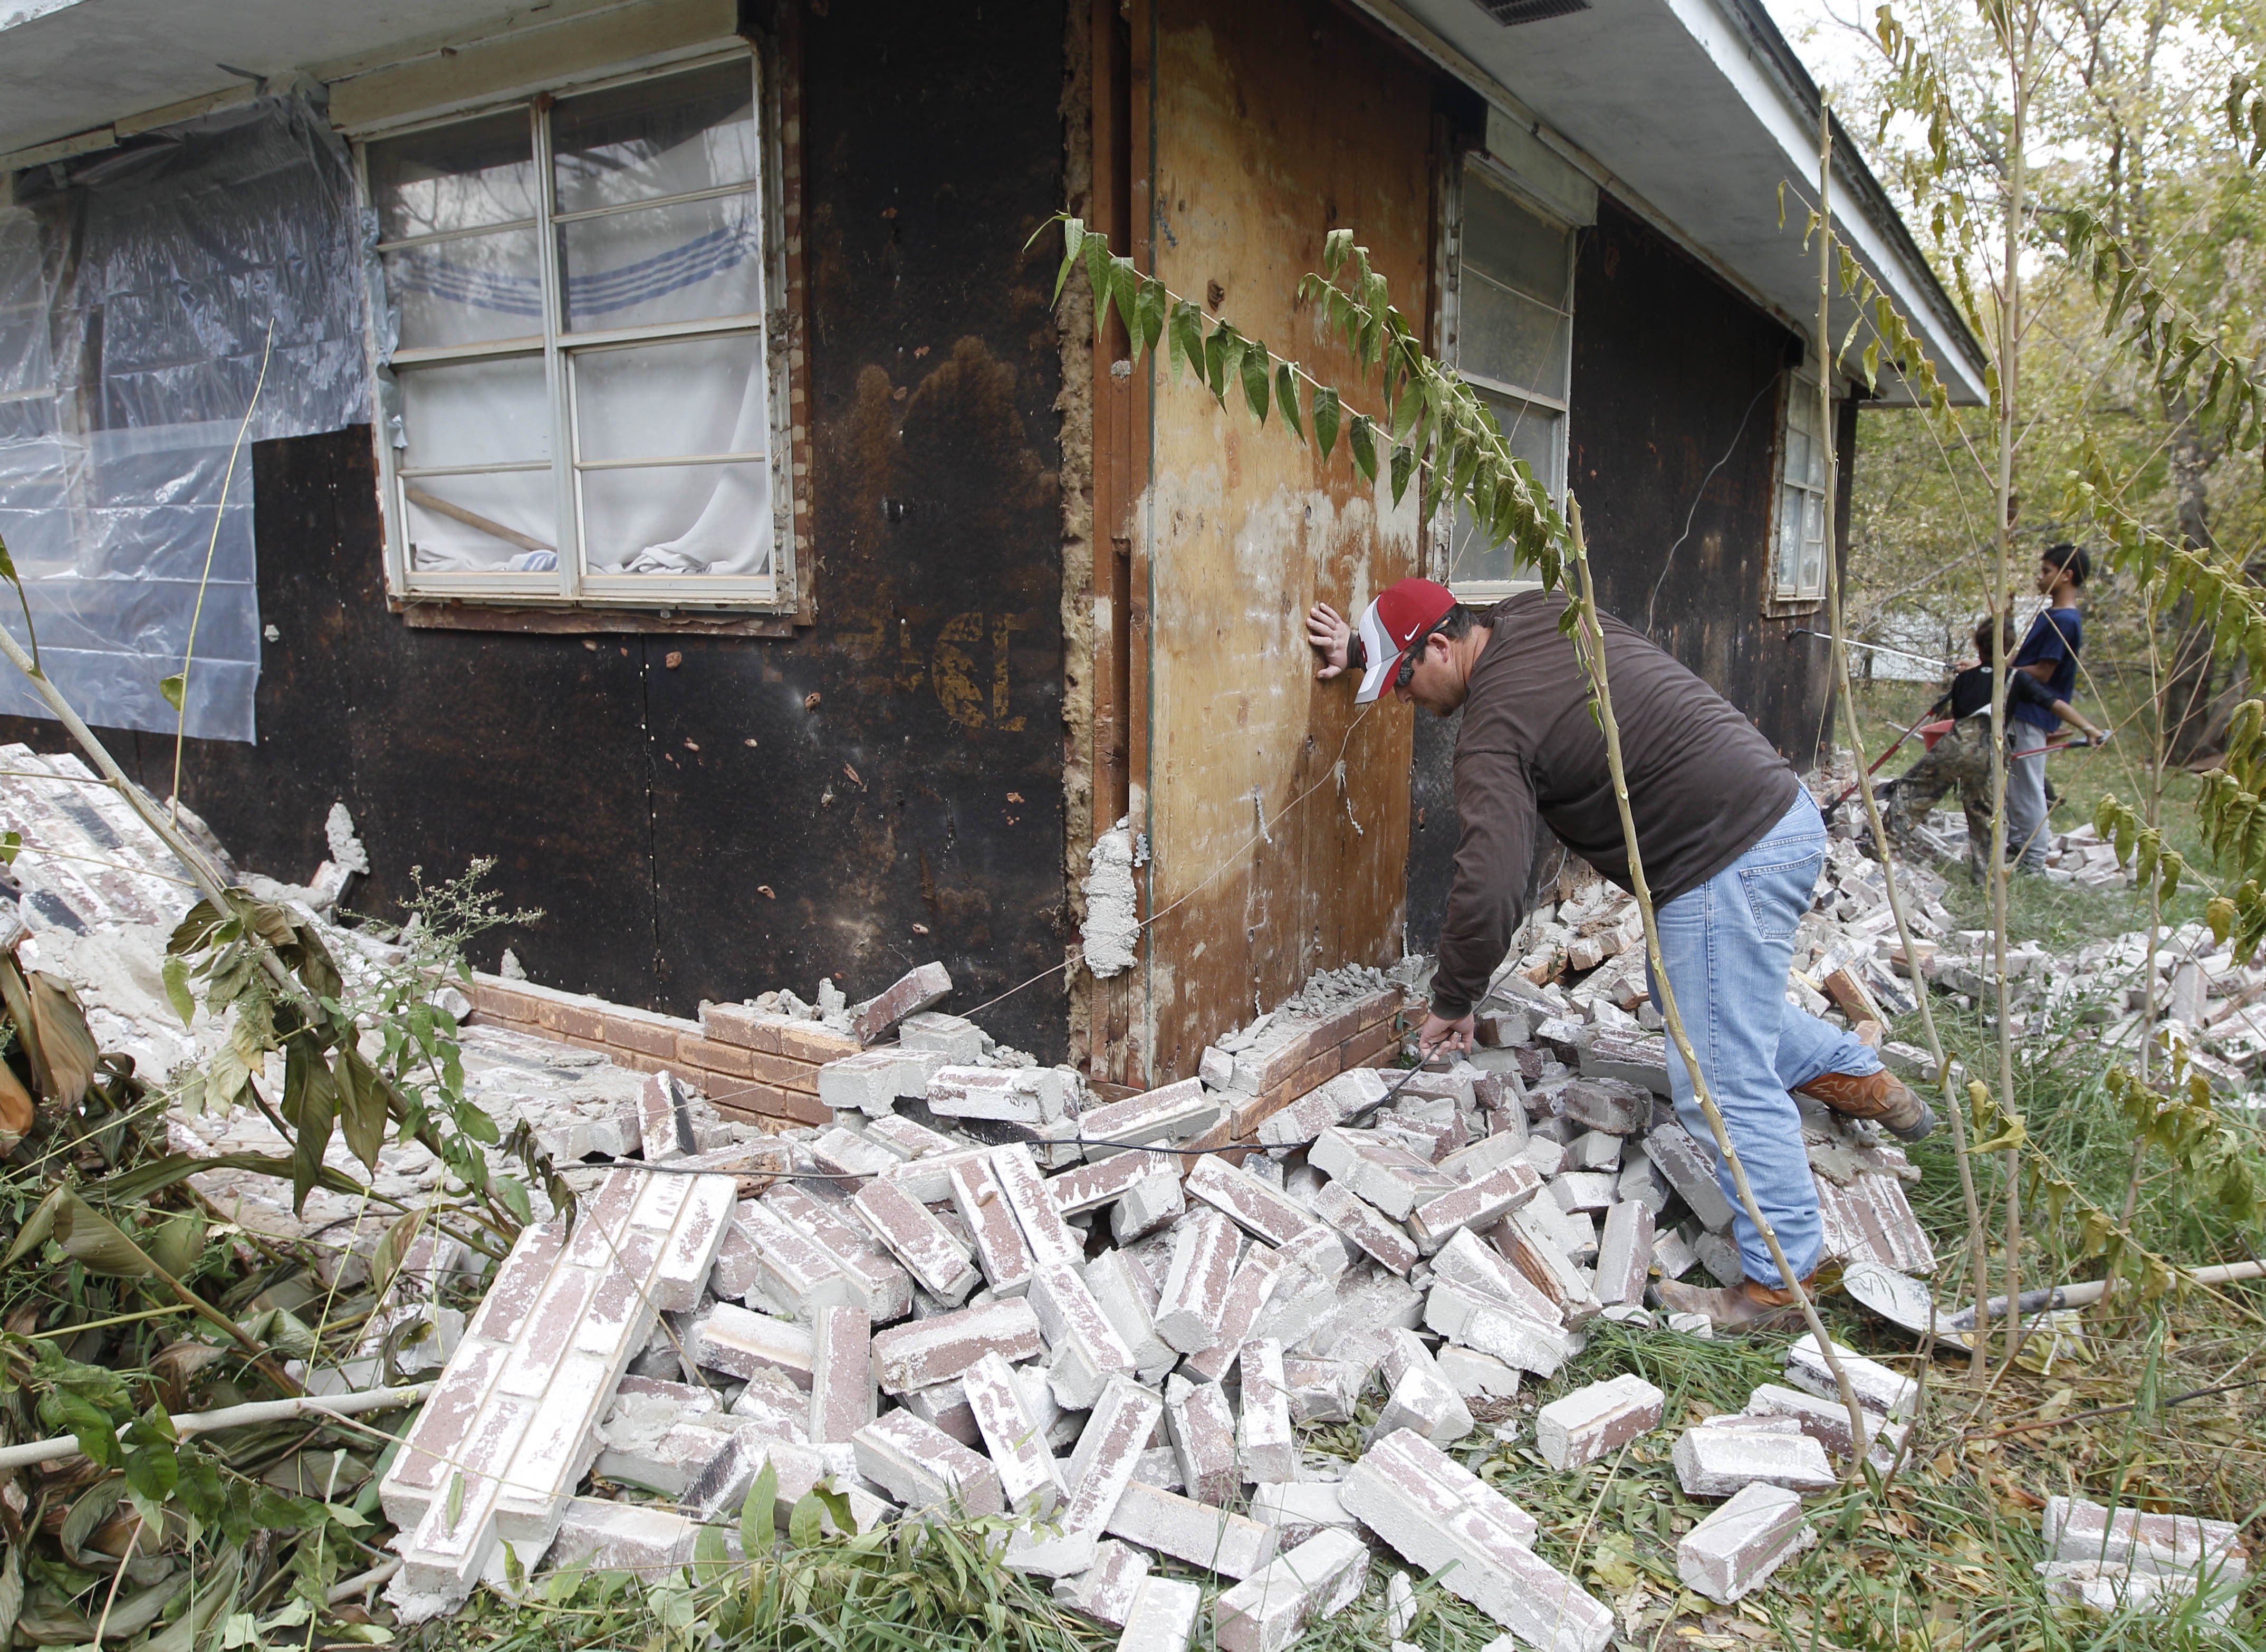 Chad Devereaux examines bricks that fell from three sides of his in-laws' home in Sparks, Okla., on Nov. 6, 2011, following two earthquakes that hit the area.